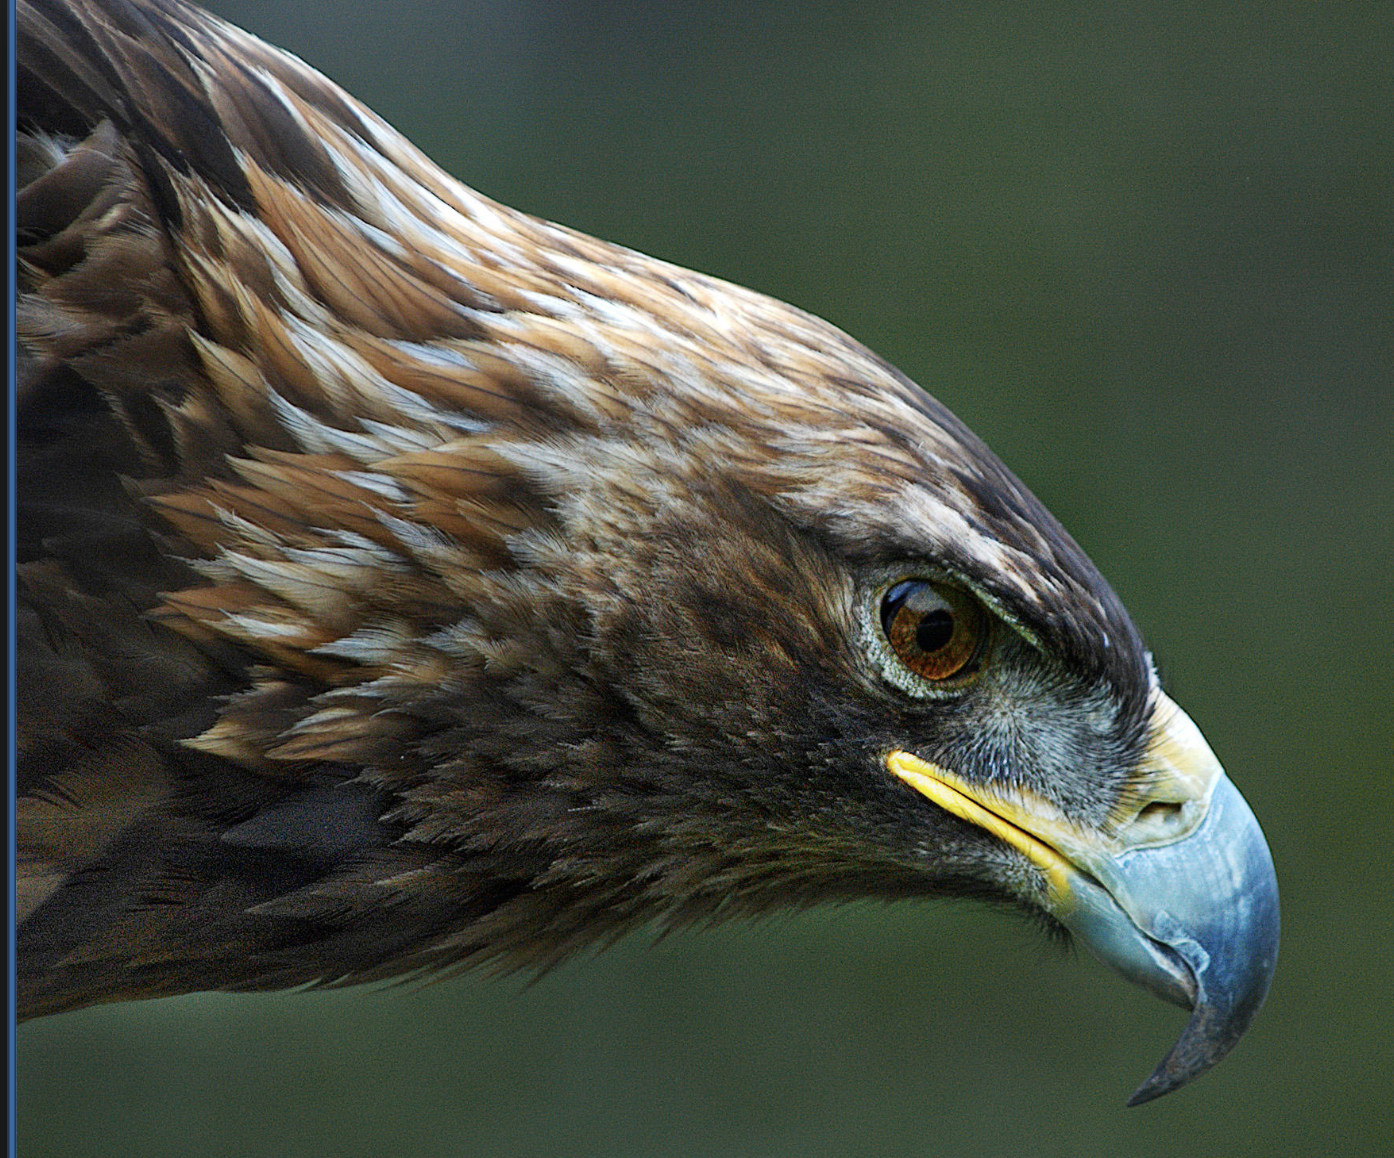 Helping Write the Story - Current research on golden eagles activityInterspecies collaboration activity